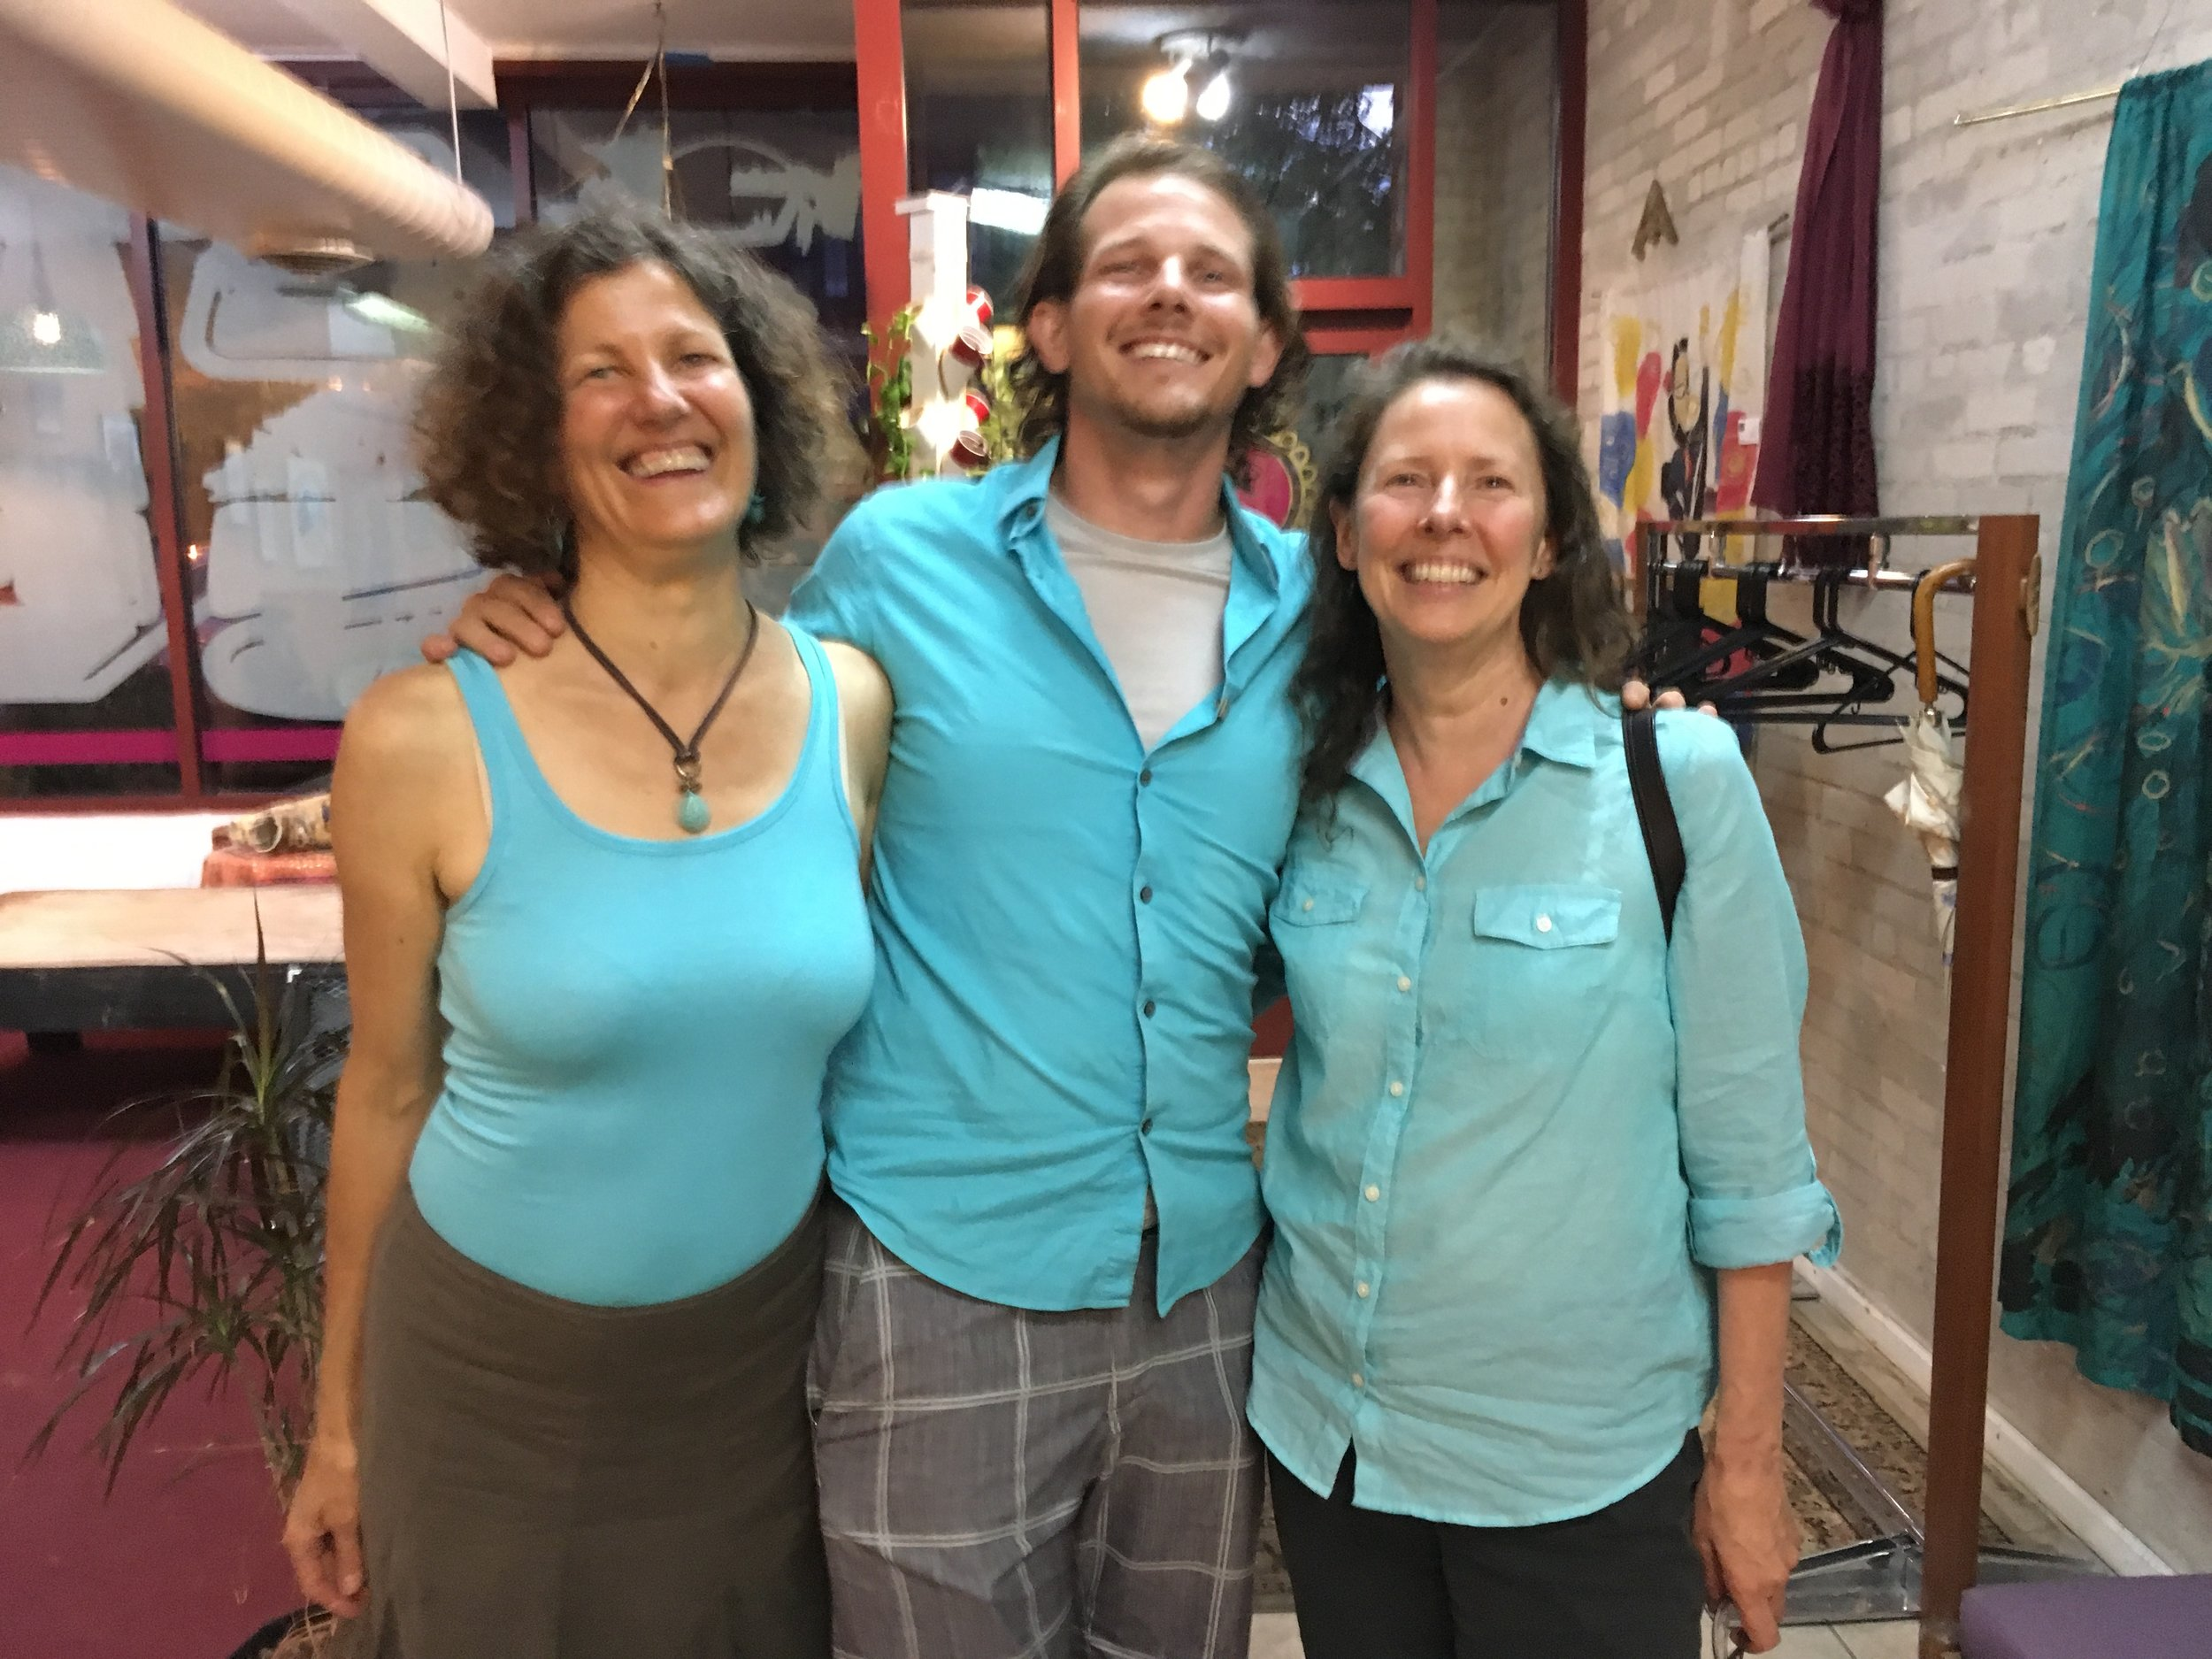 Tina Clarke, Nils Palsson, and Kristina Zill are beaming with satisfaction after an amazing dinner at Minneapolis' Gandhi Mahal. Photo courtesy of Nils Palsson.